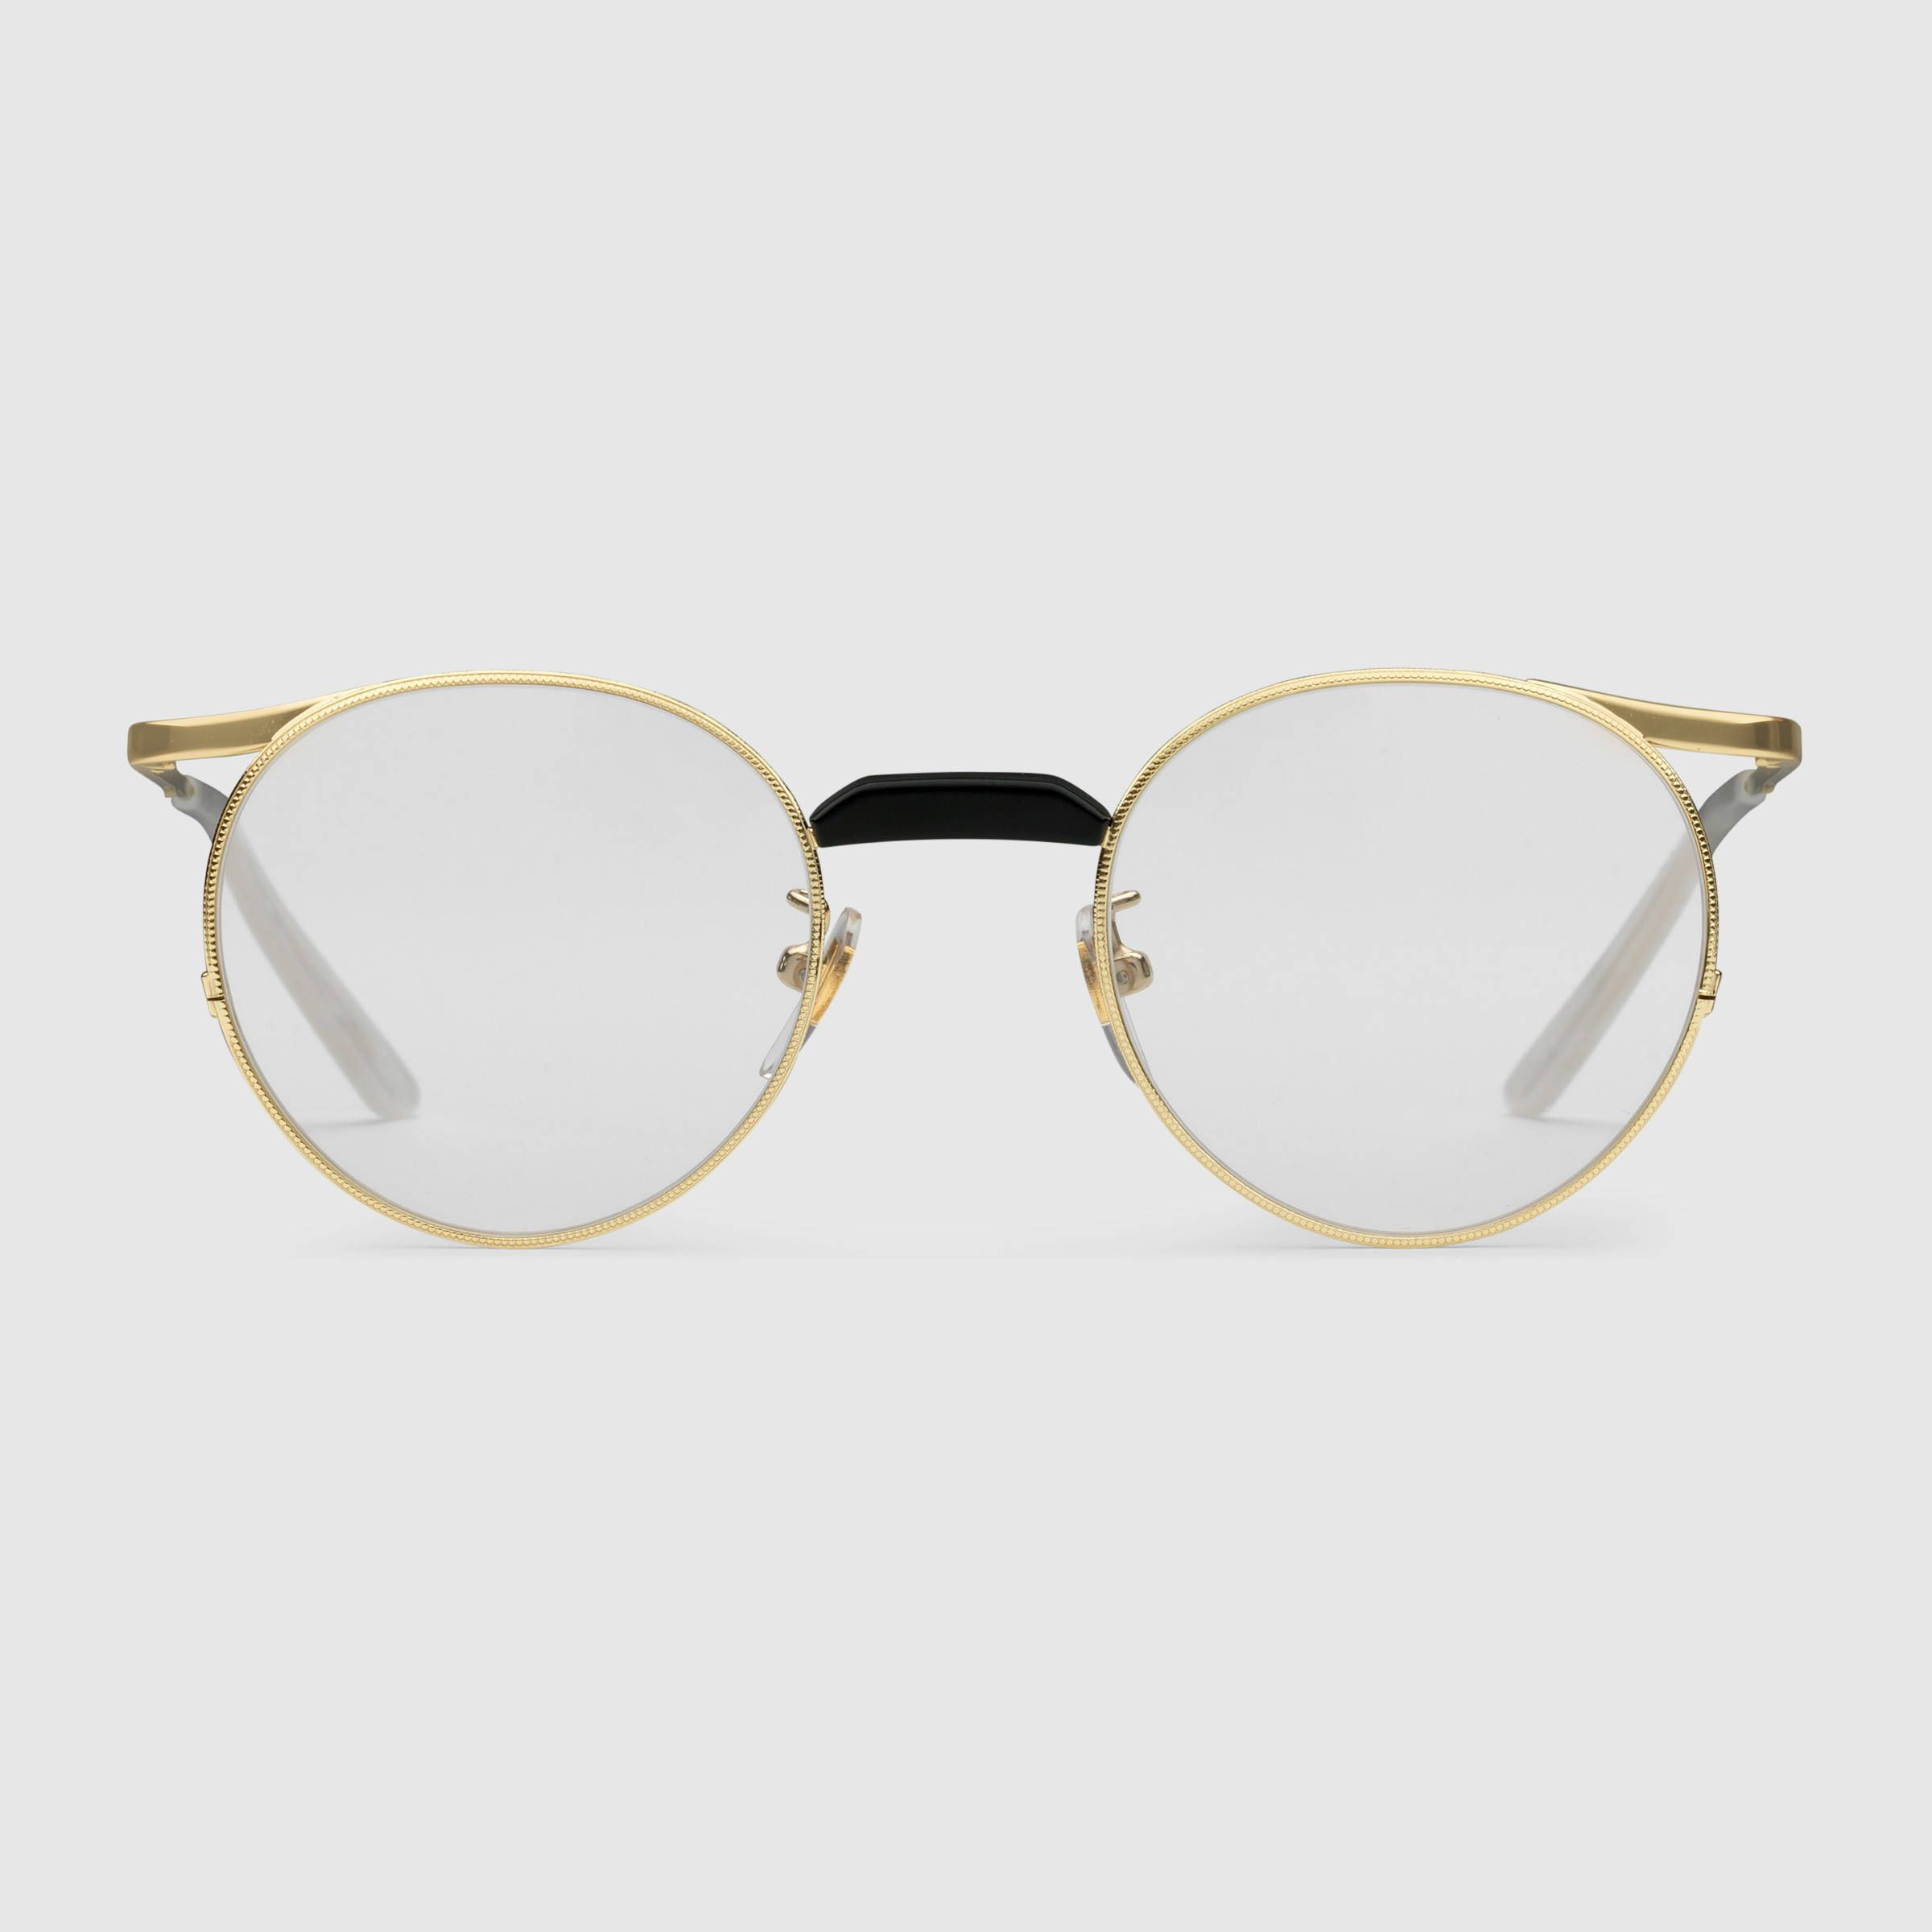 871c24f5d9f Round-frame metal glasses - Gucci Men s Round   Oval 494332I33308880 ...